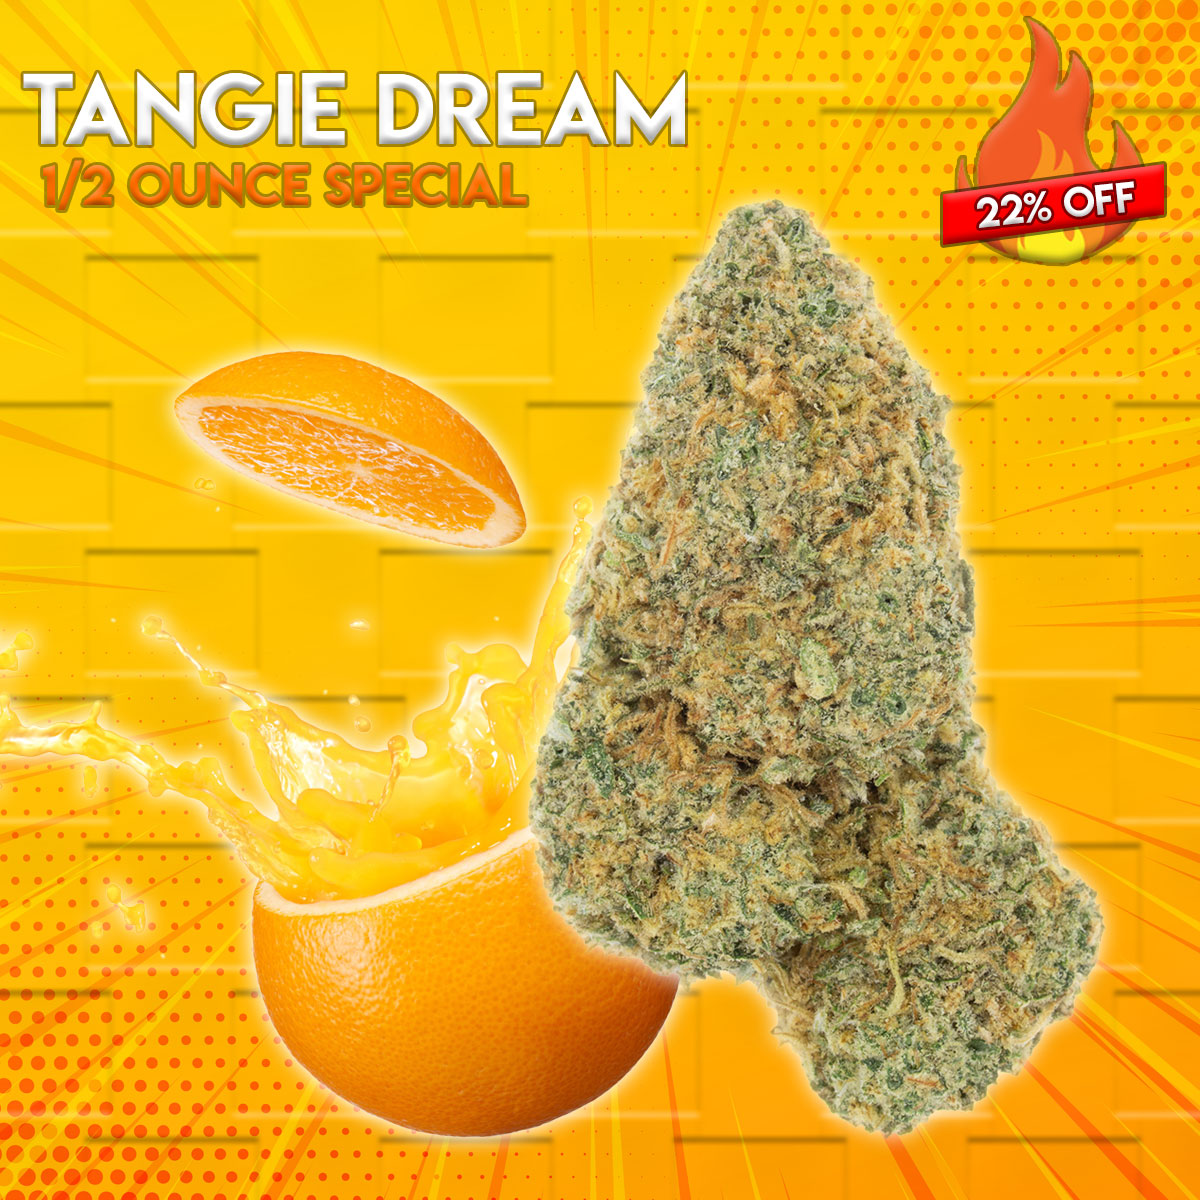 Tangie Dream 1/2 Ounce Special by Green Society - Image © 2018 Green Society. All Rights Reserved.